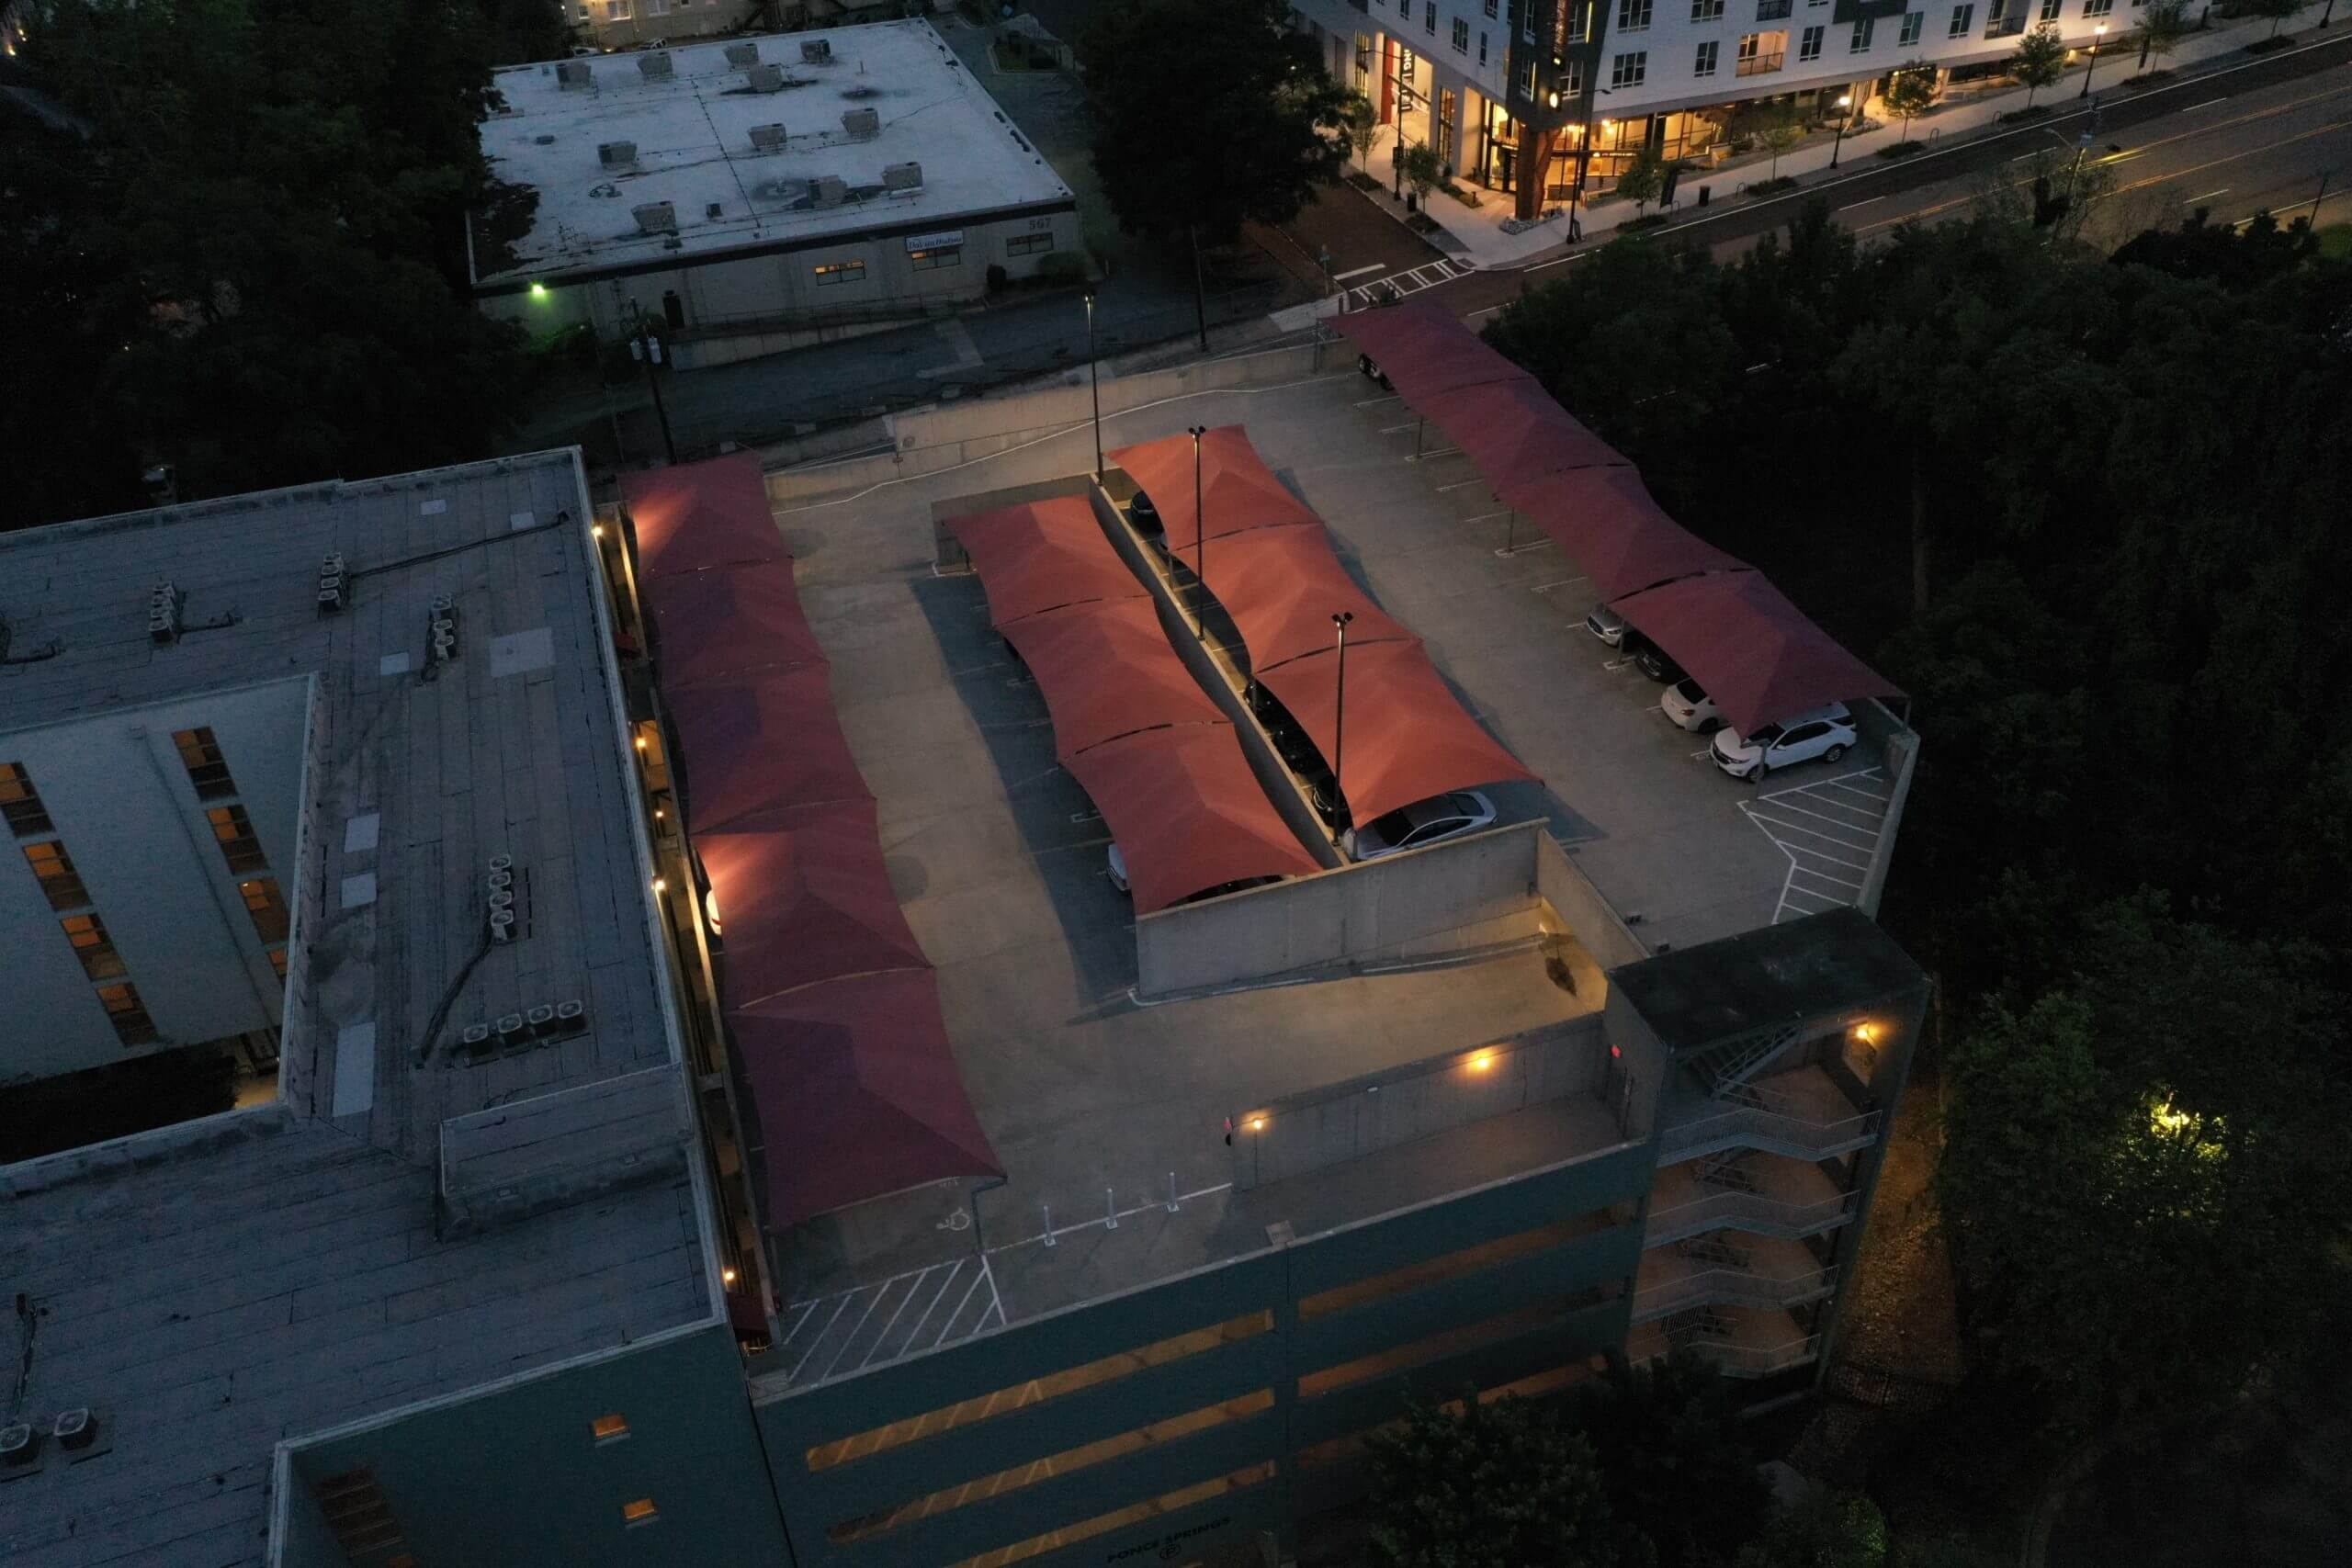 LED Conversions for parking deck lighting